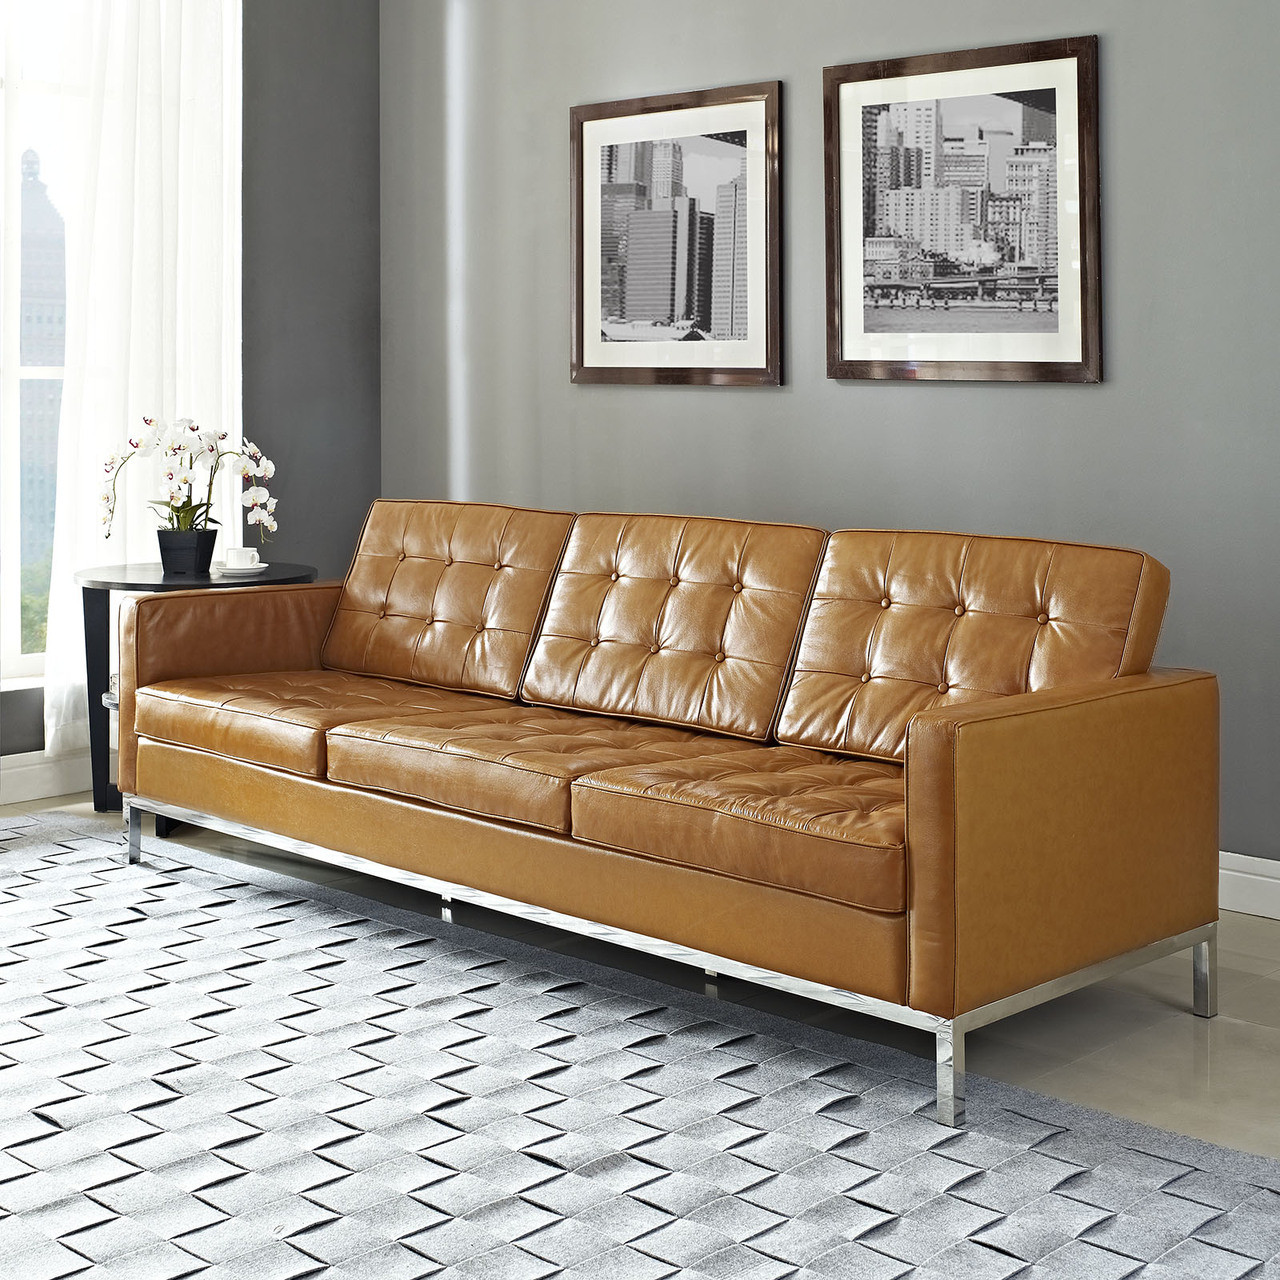 Modern Sofas | Leather & Upholstered Sofa Sale | Zin Home